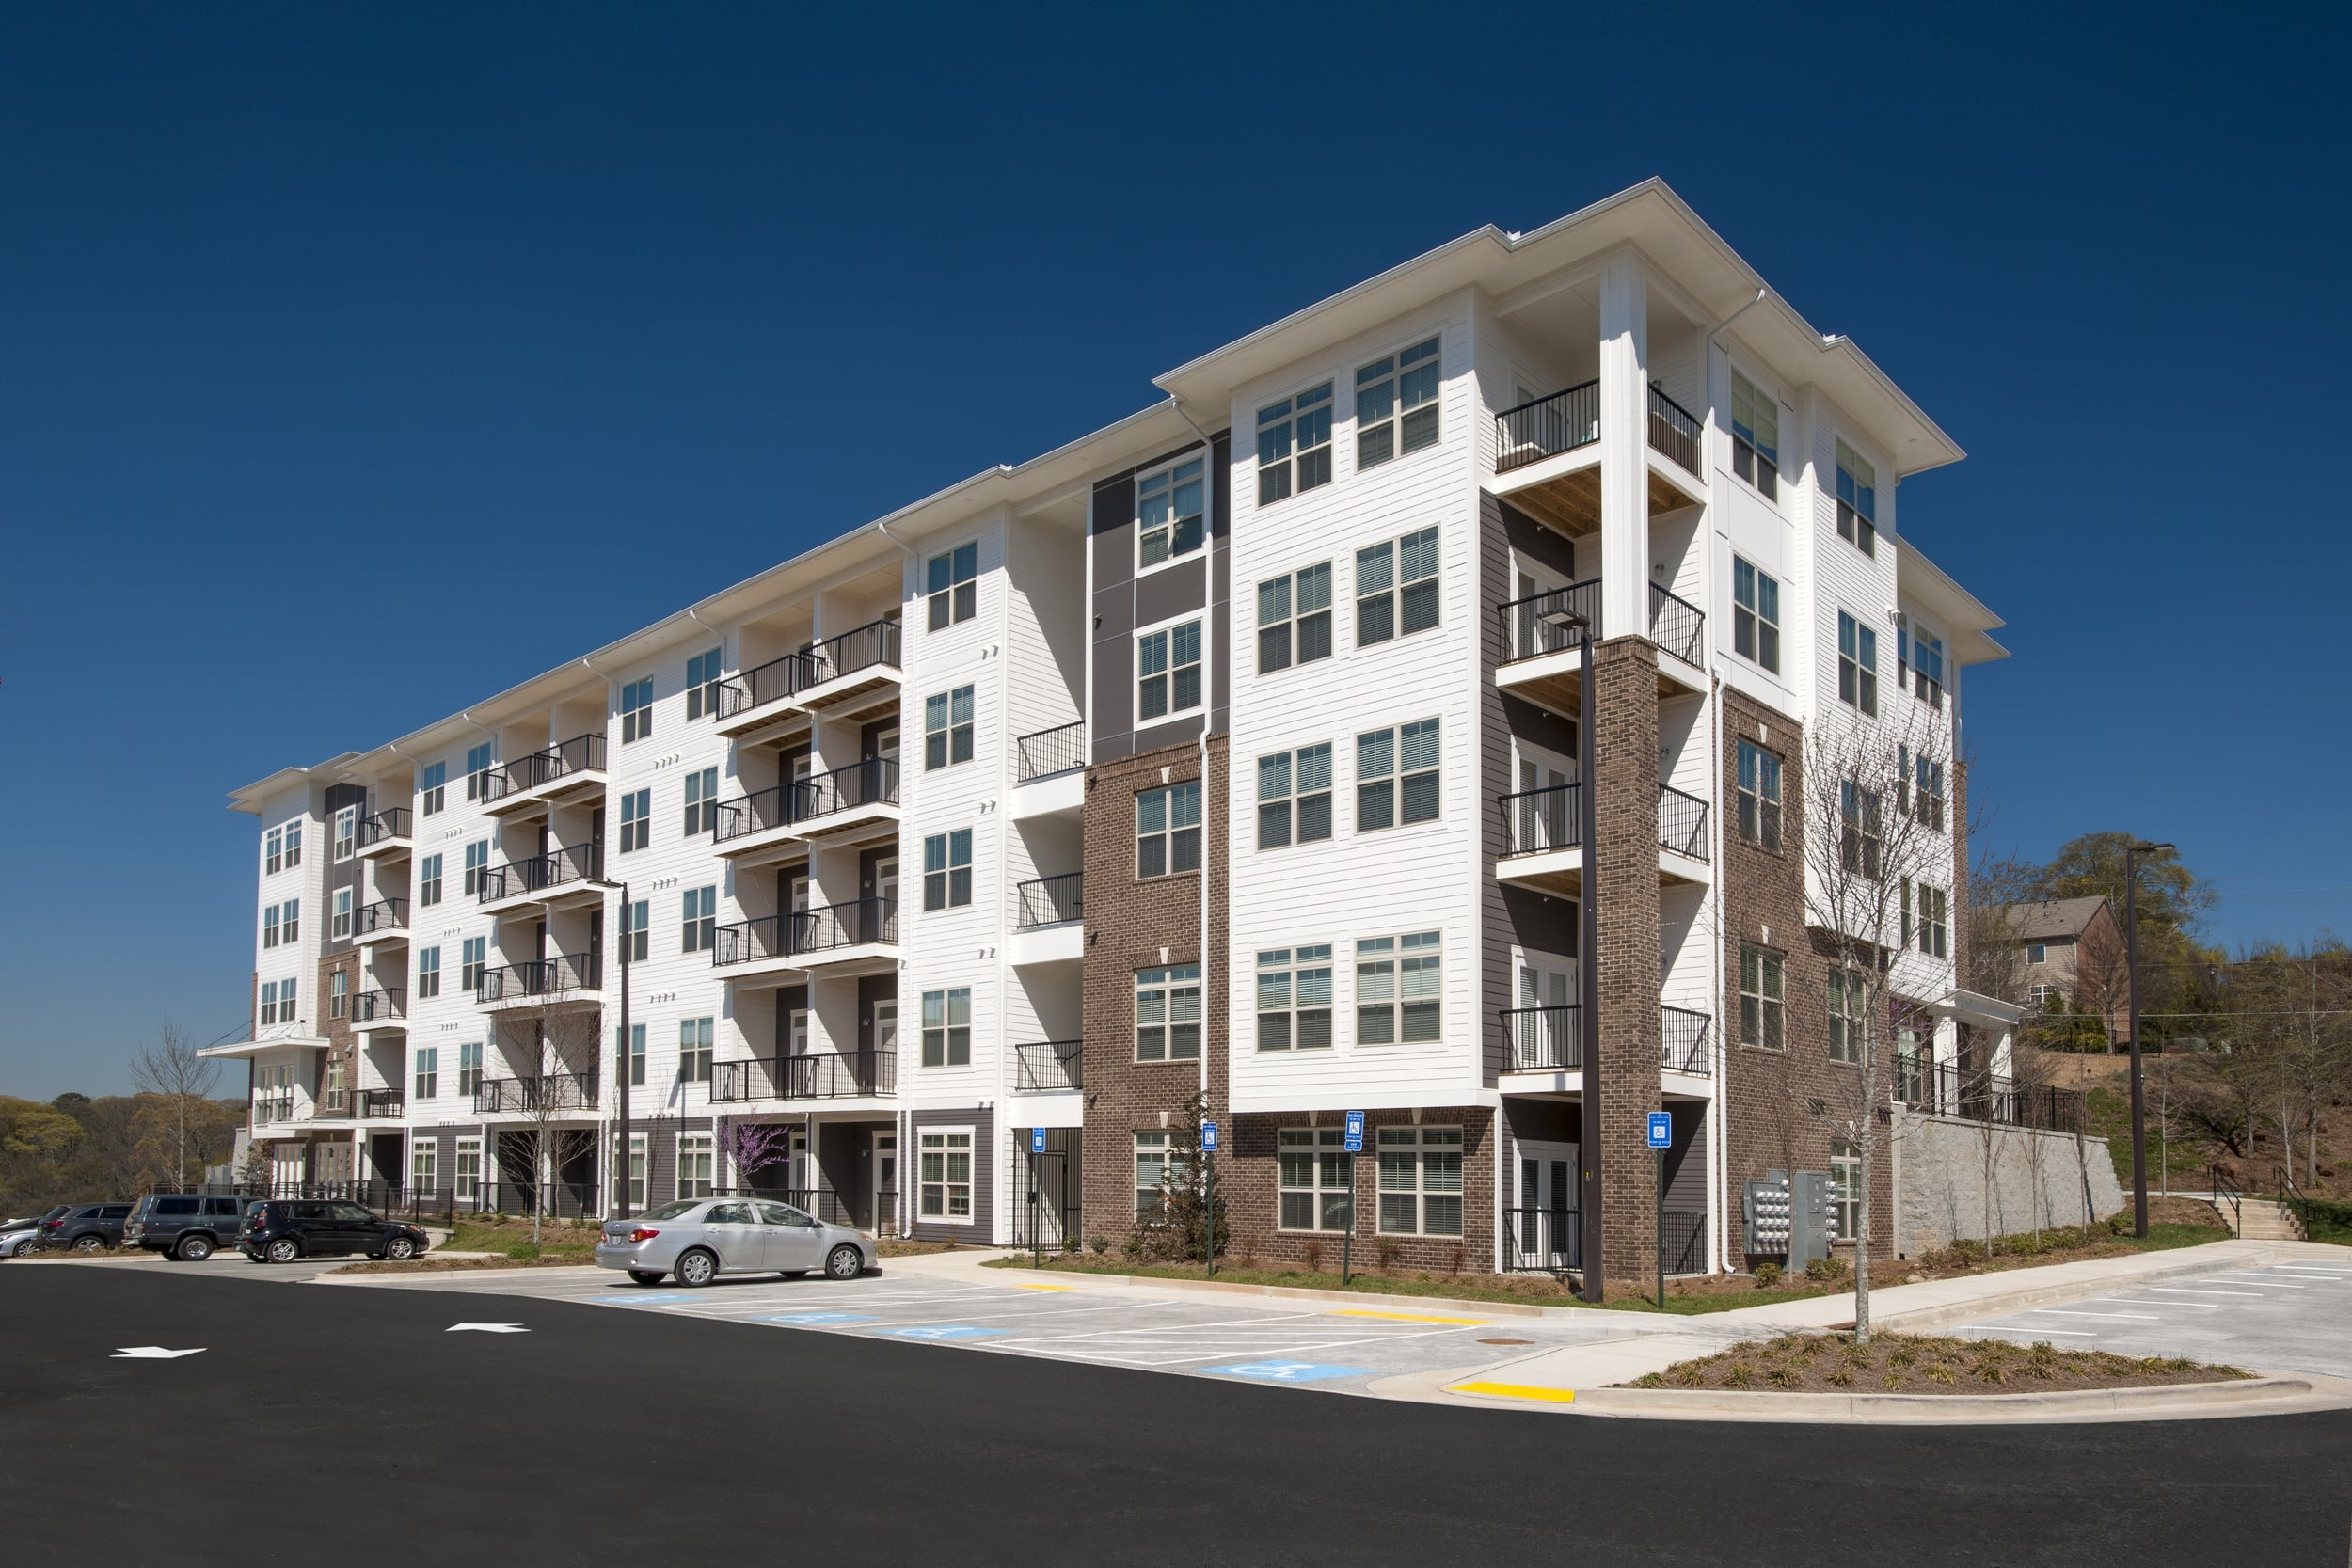 Exterior view of Ardmore Apartments